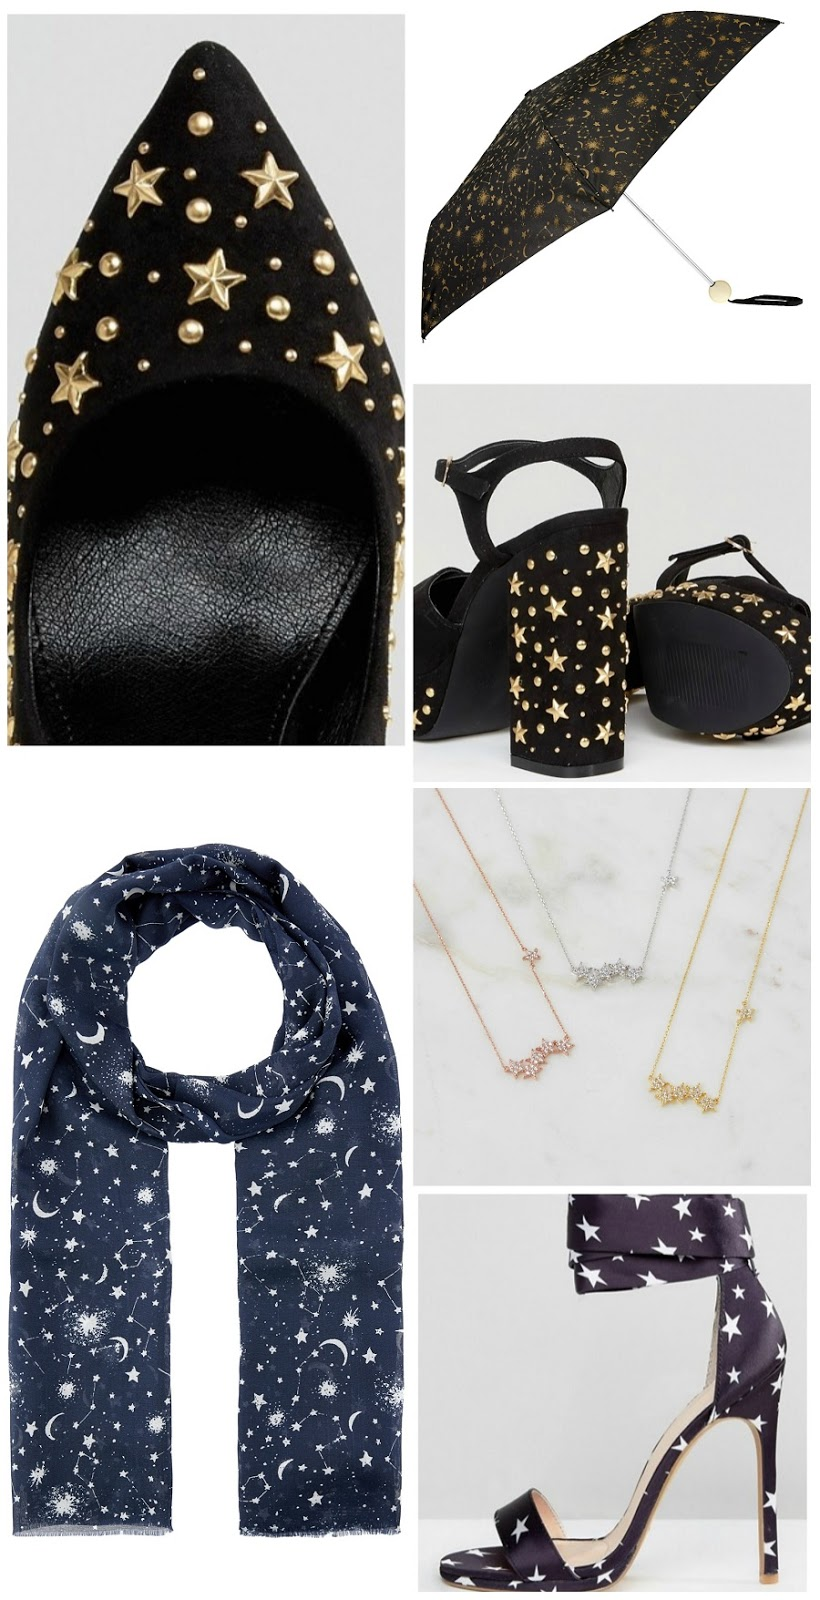 Constellation print accessories, star print shoes, celestial accessories, The Style Guide Blog